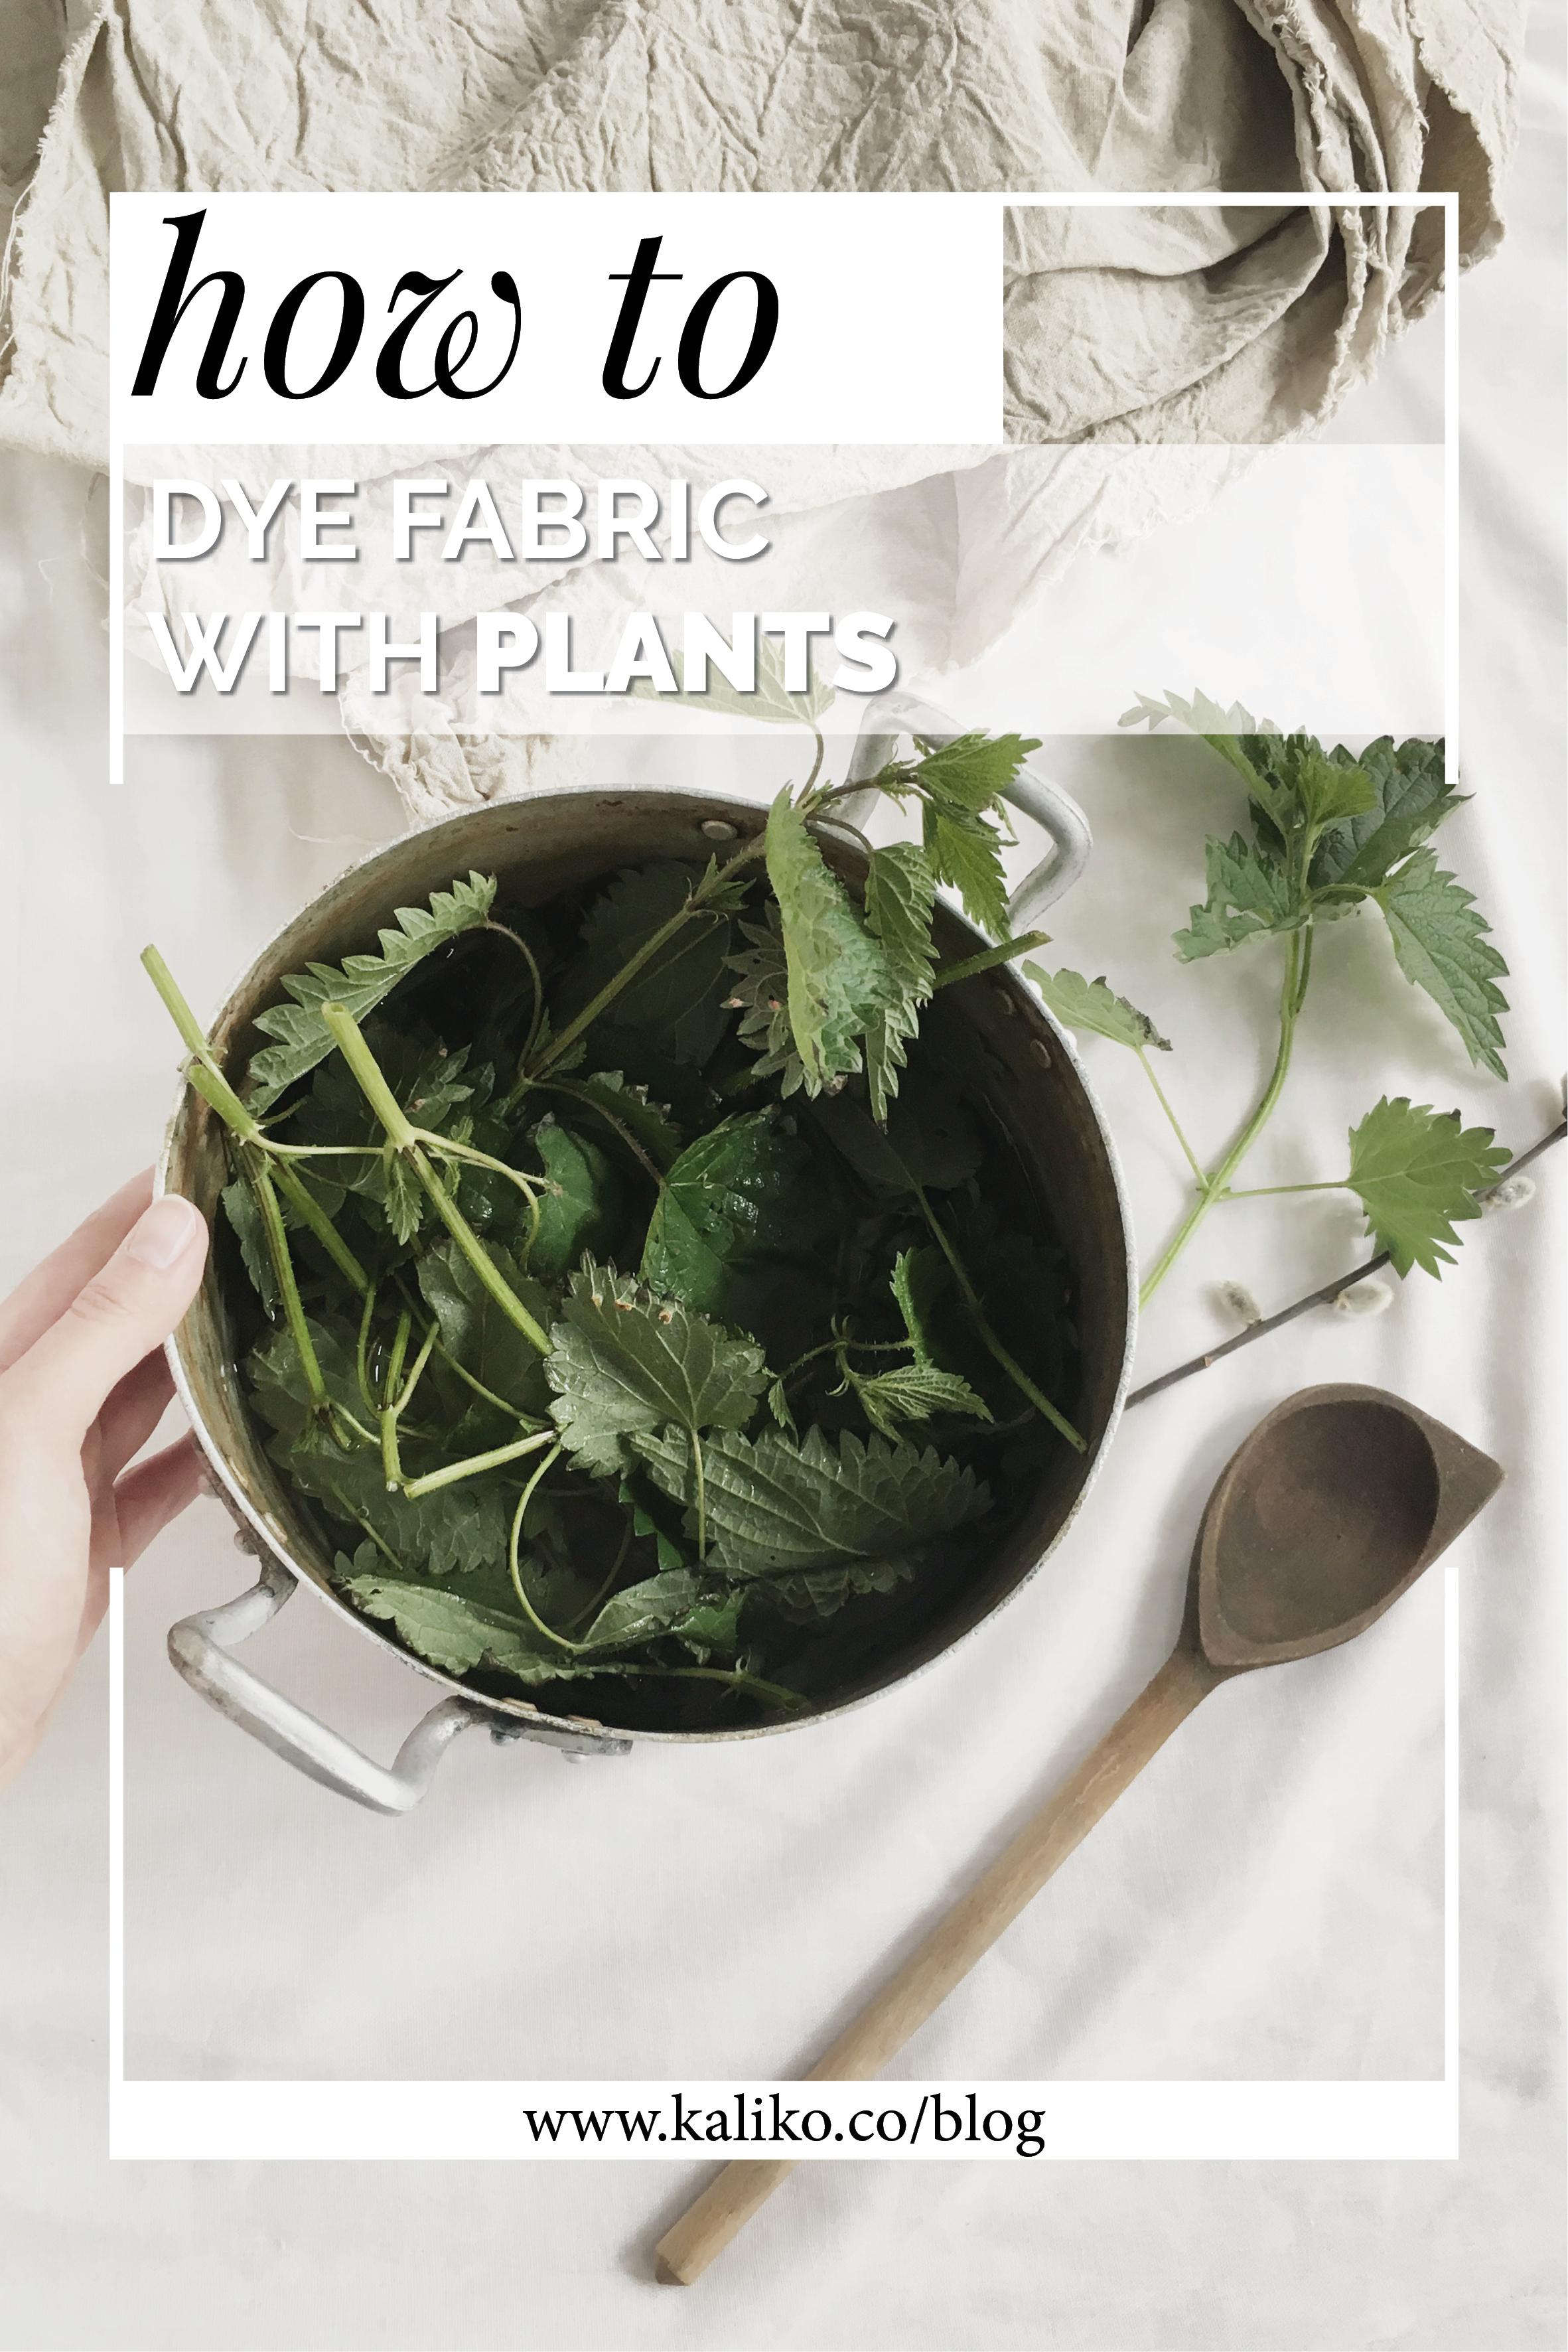 HOW TO DYE FABRIC WITH PLANTS .jpg